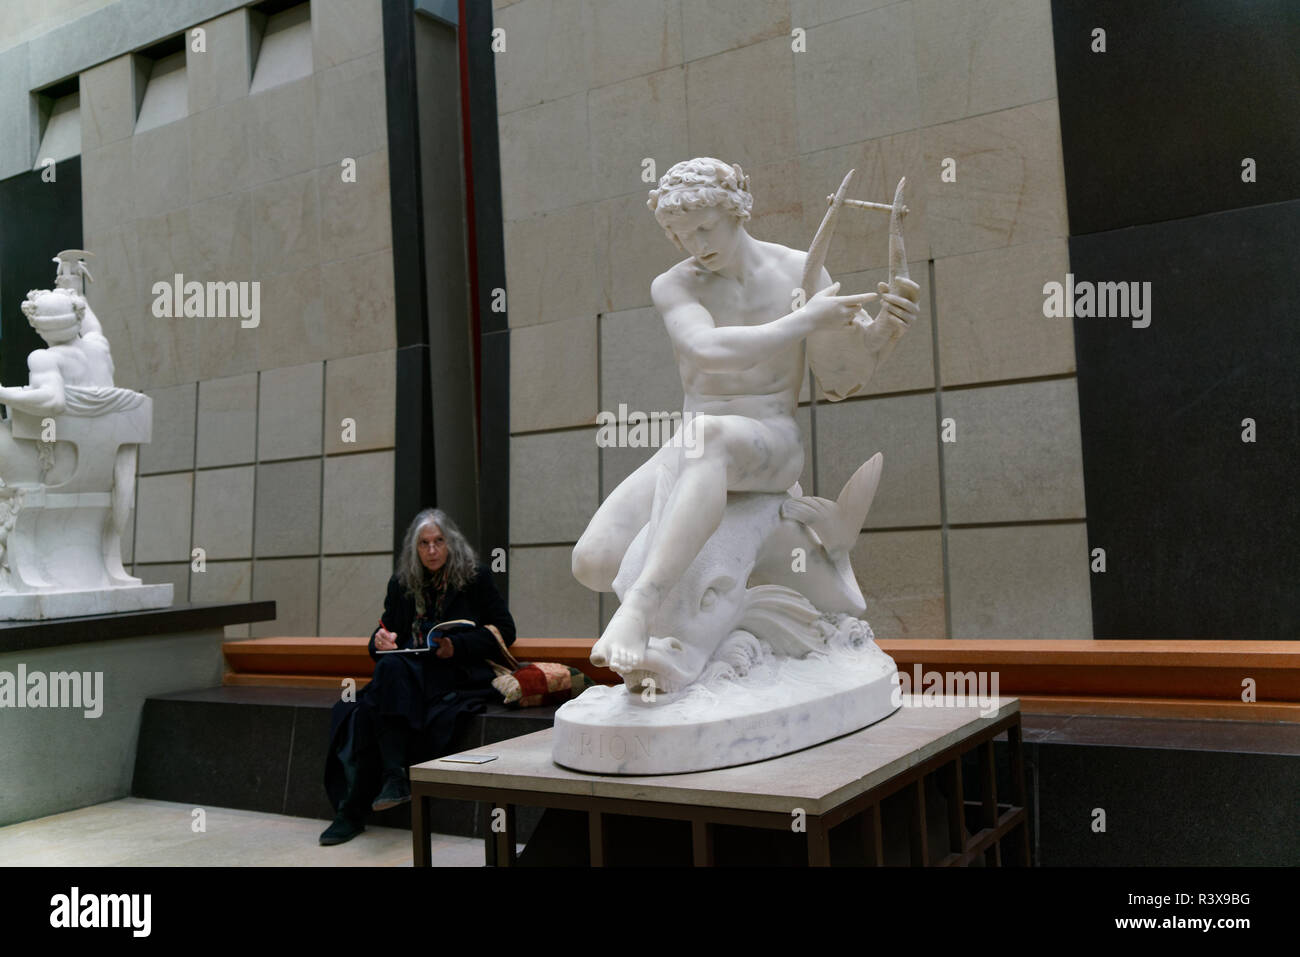 """A woman in the Musée d'Orsay in Paris sketching """"Arion seated on a Dolphin,"""" a sculpture by Ernest Eugene Hiolle that dates from 1870. - Stock Image"""